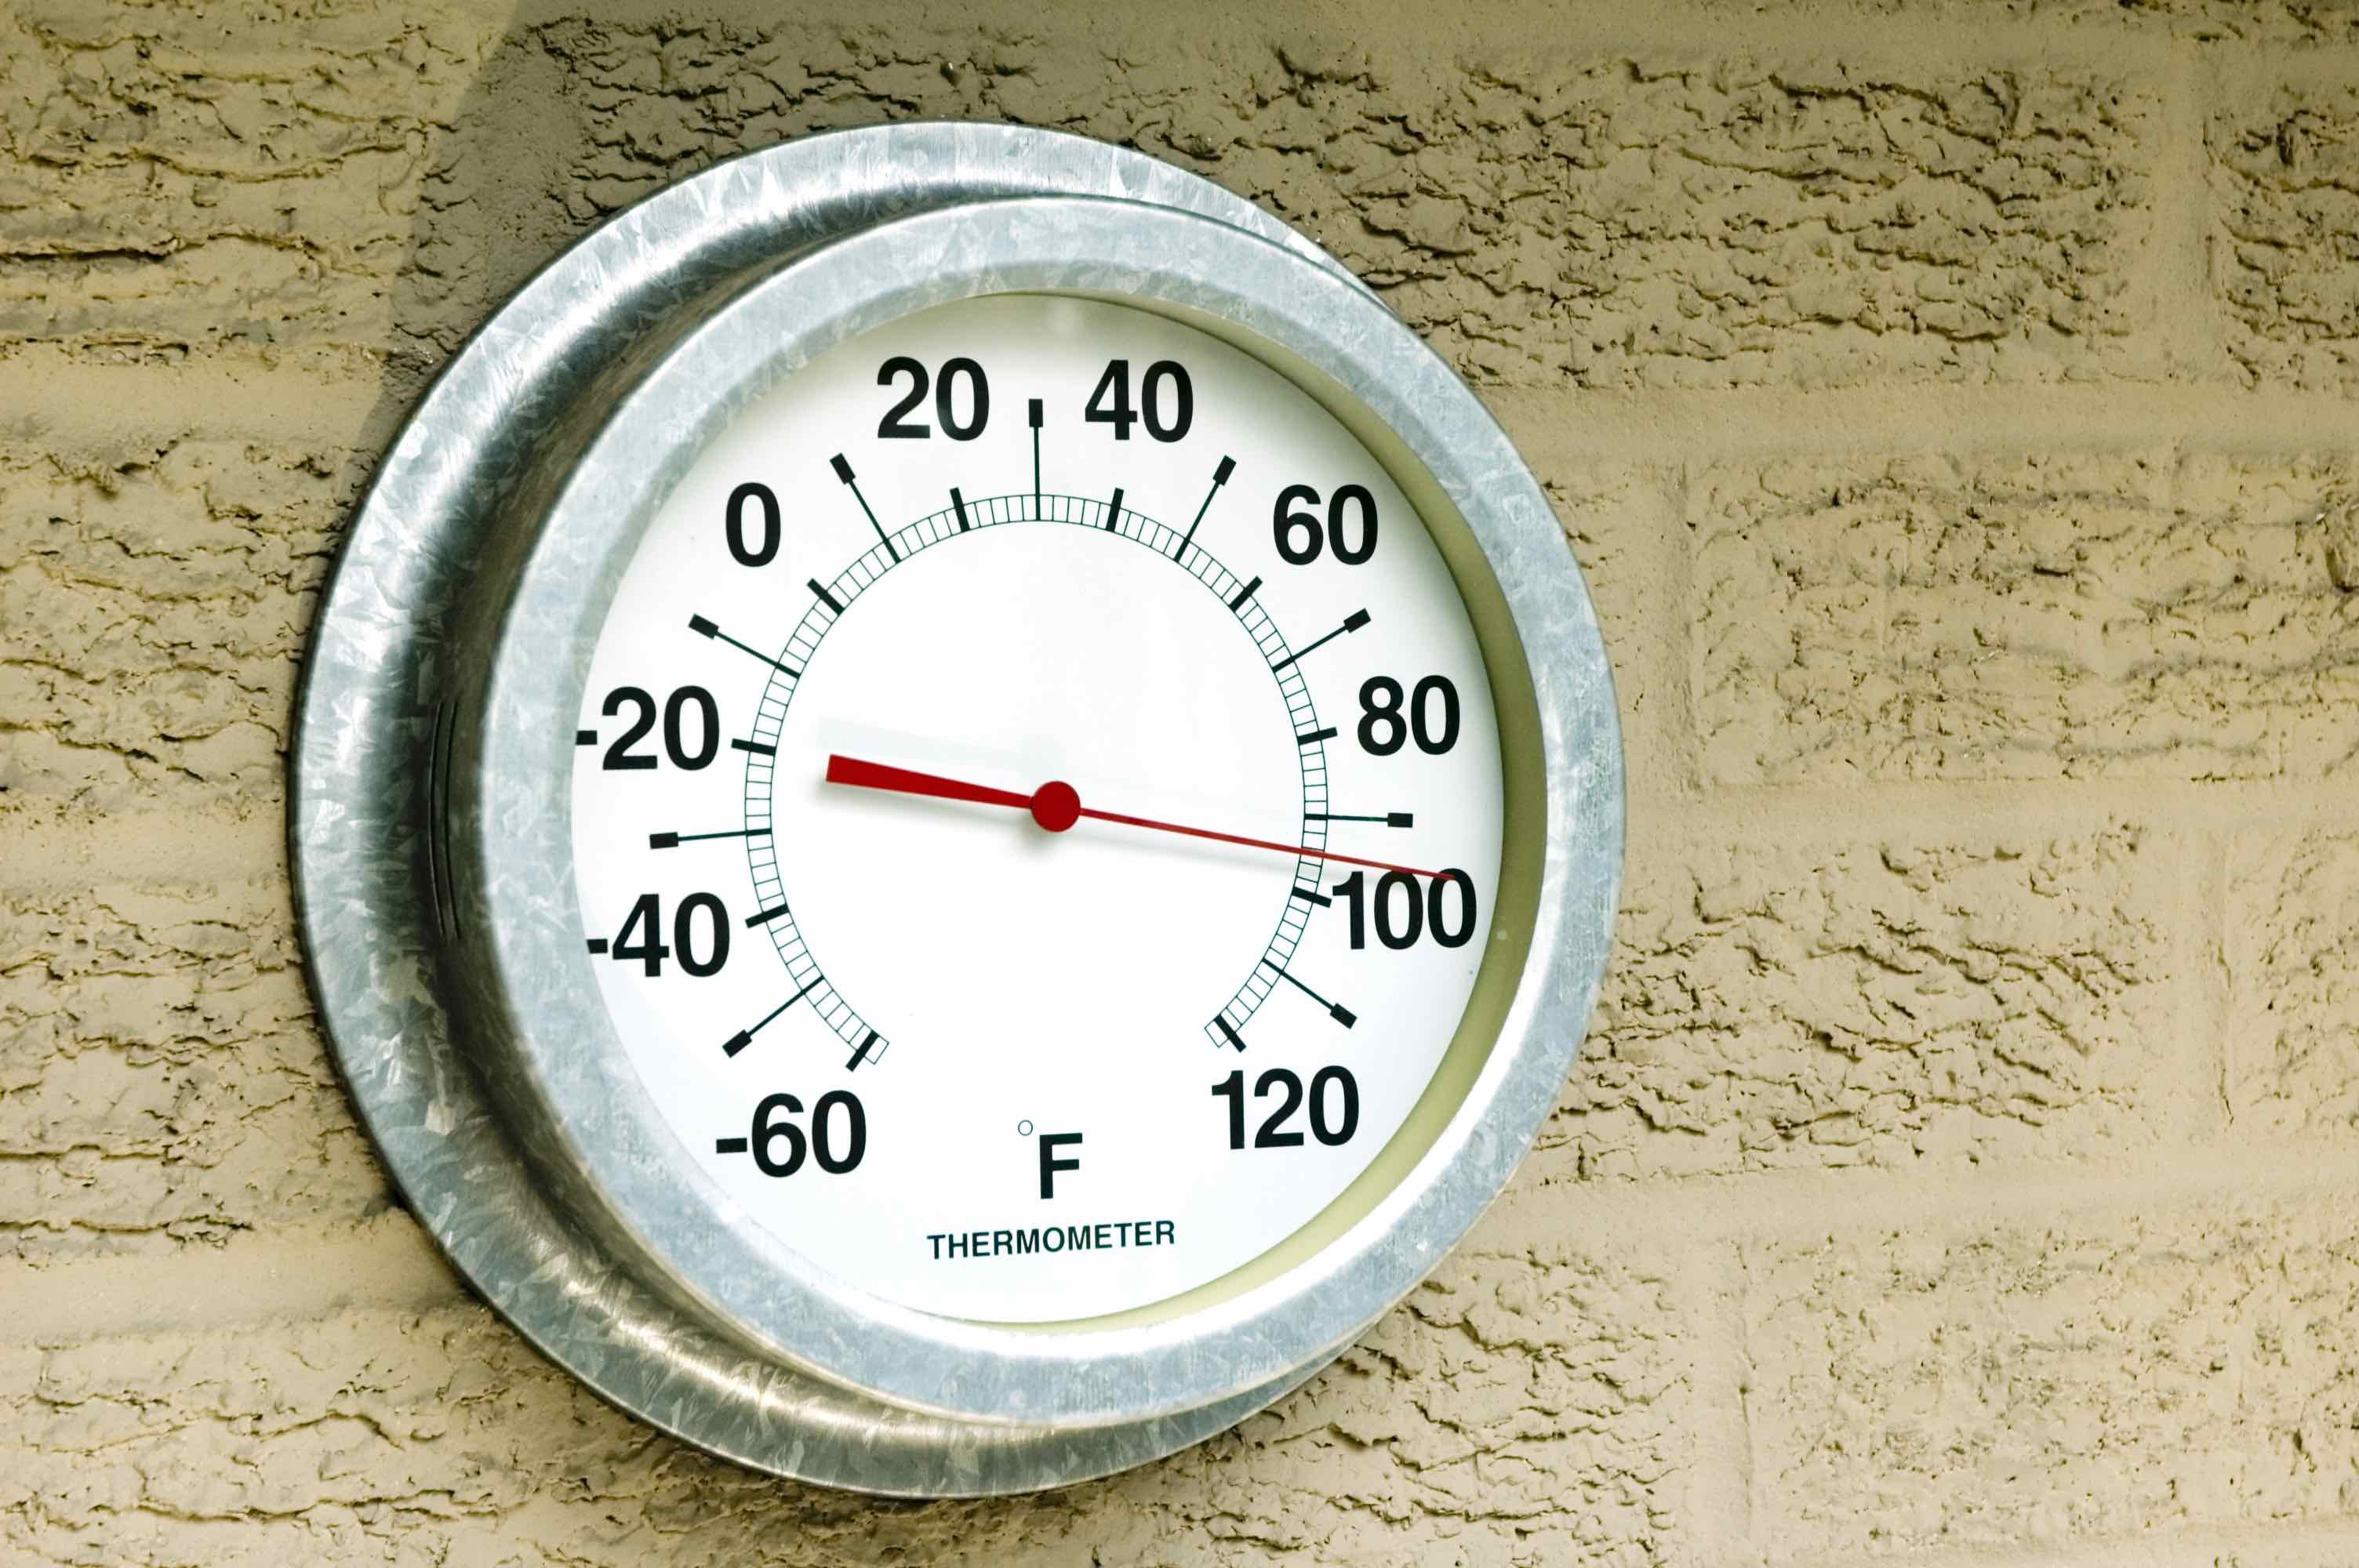 gettyimages thermometer